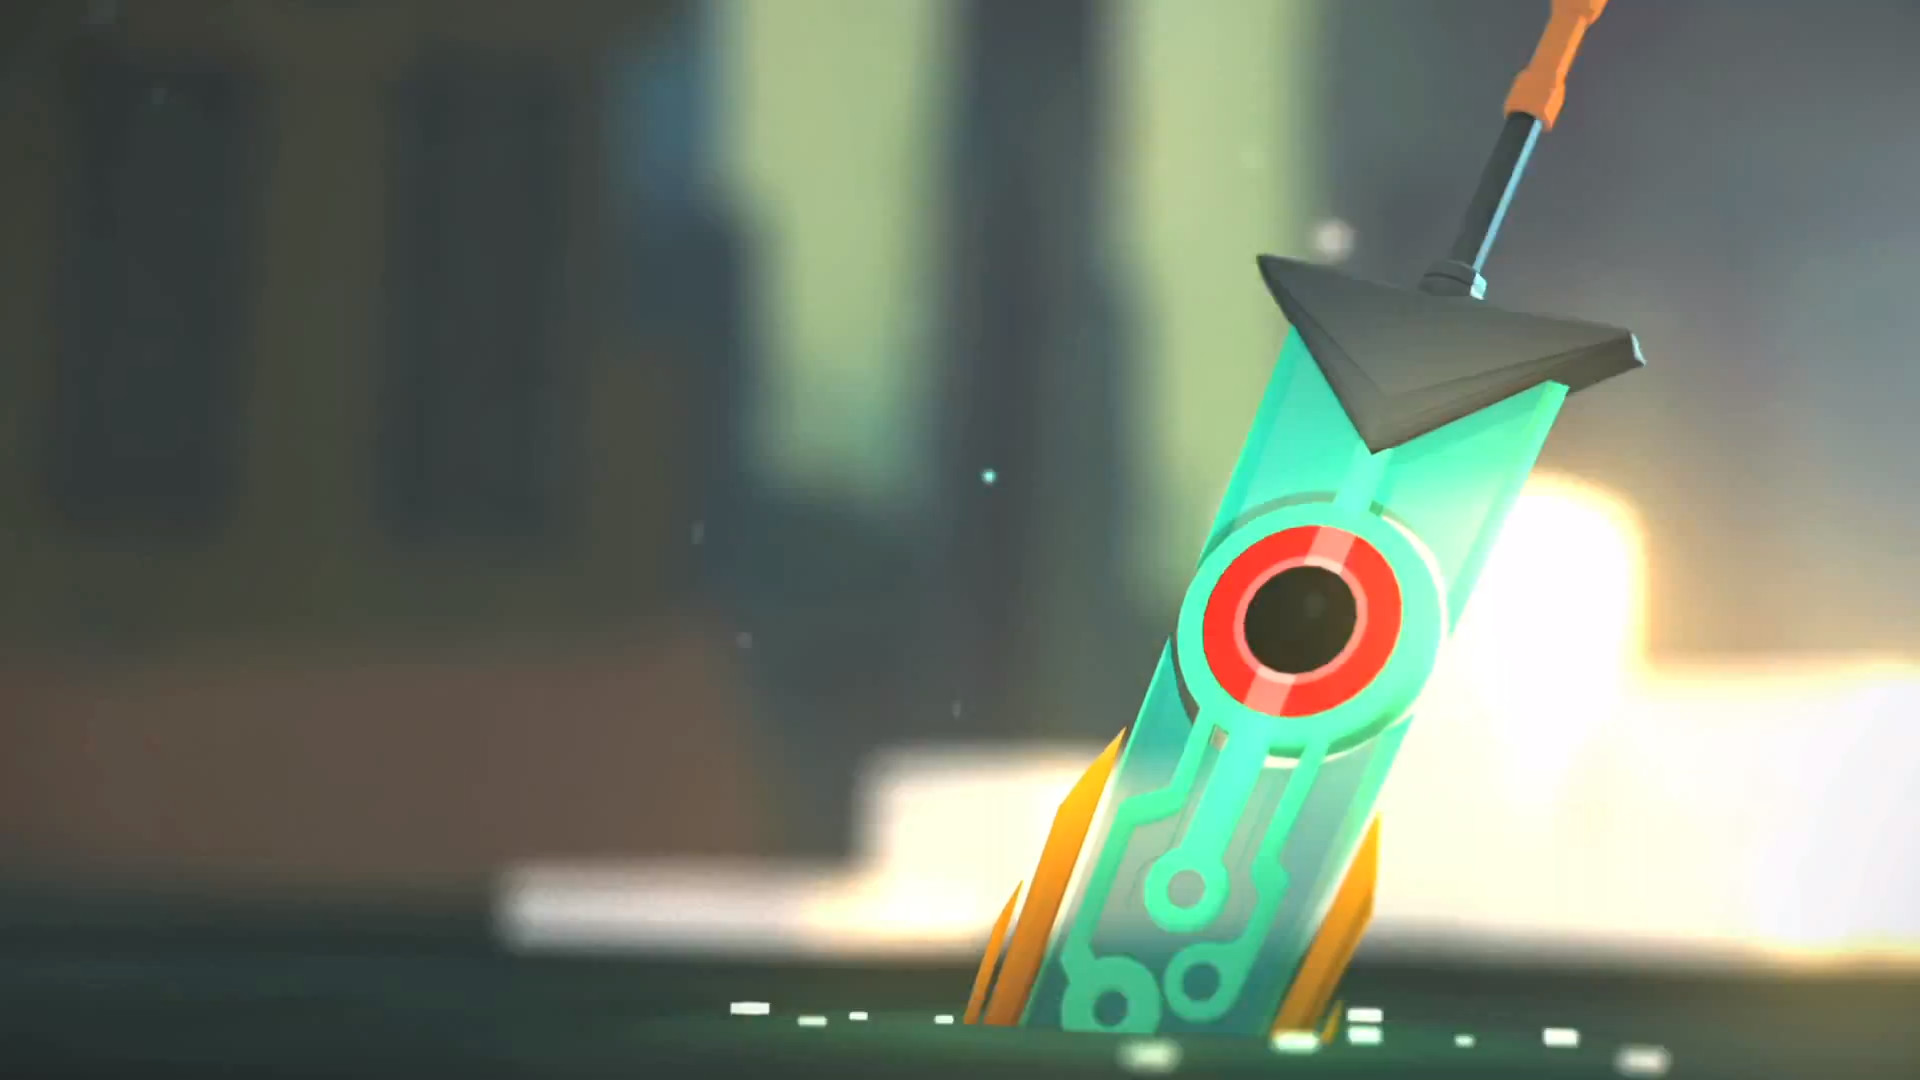 The #Transistor (1920×1080)   Transistor Wallpapers   Pinterest   Gaming  wallpapers and Wallpaper